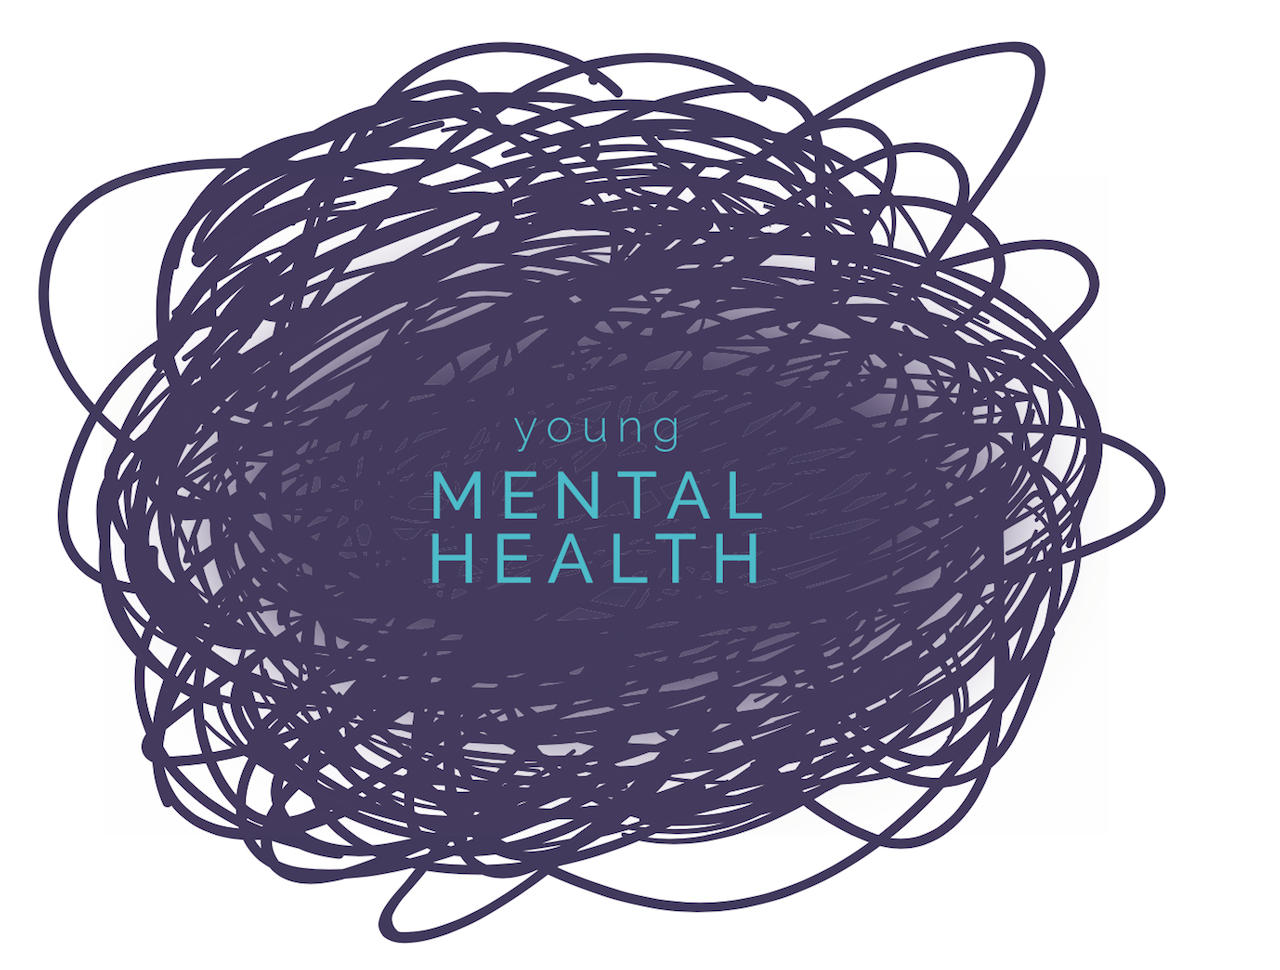 Young Mental Health image